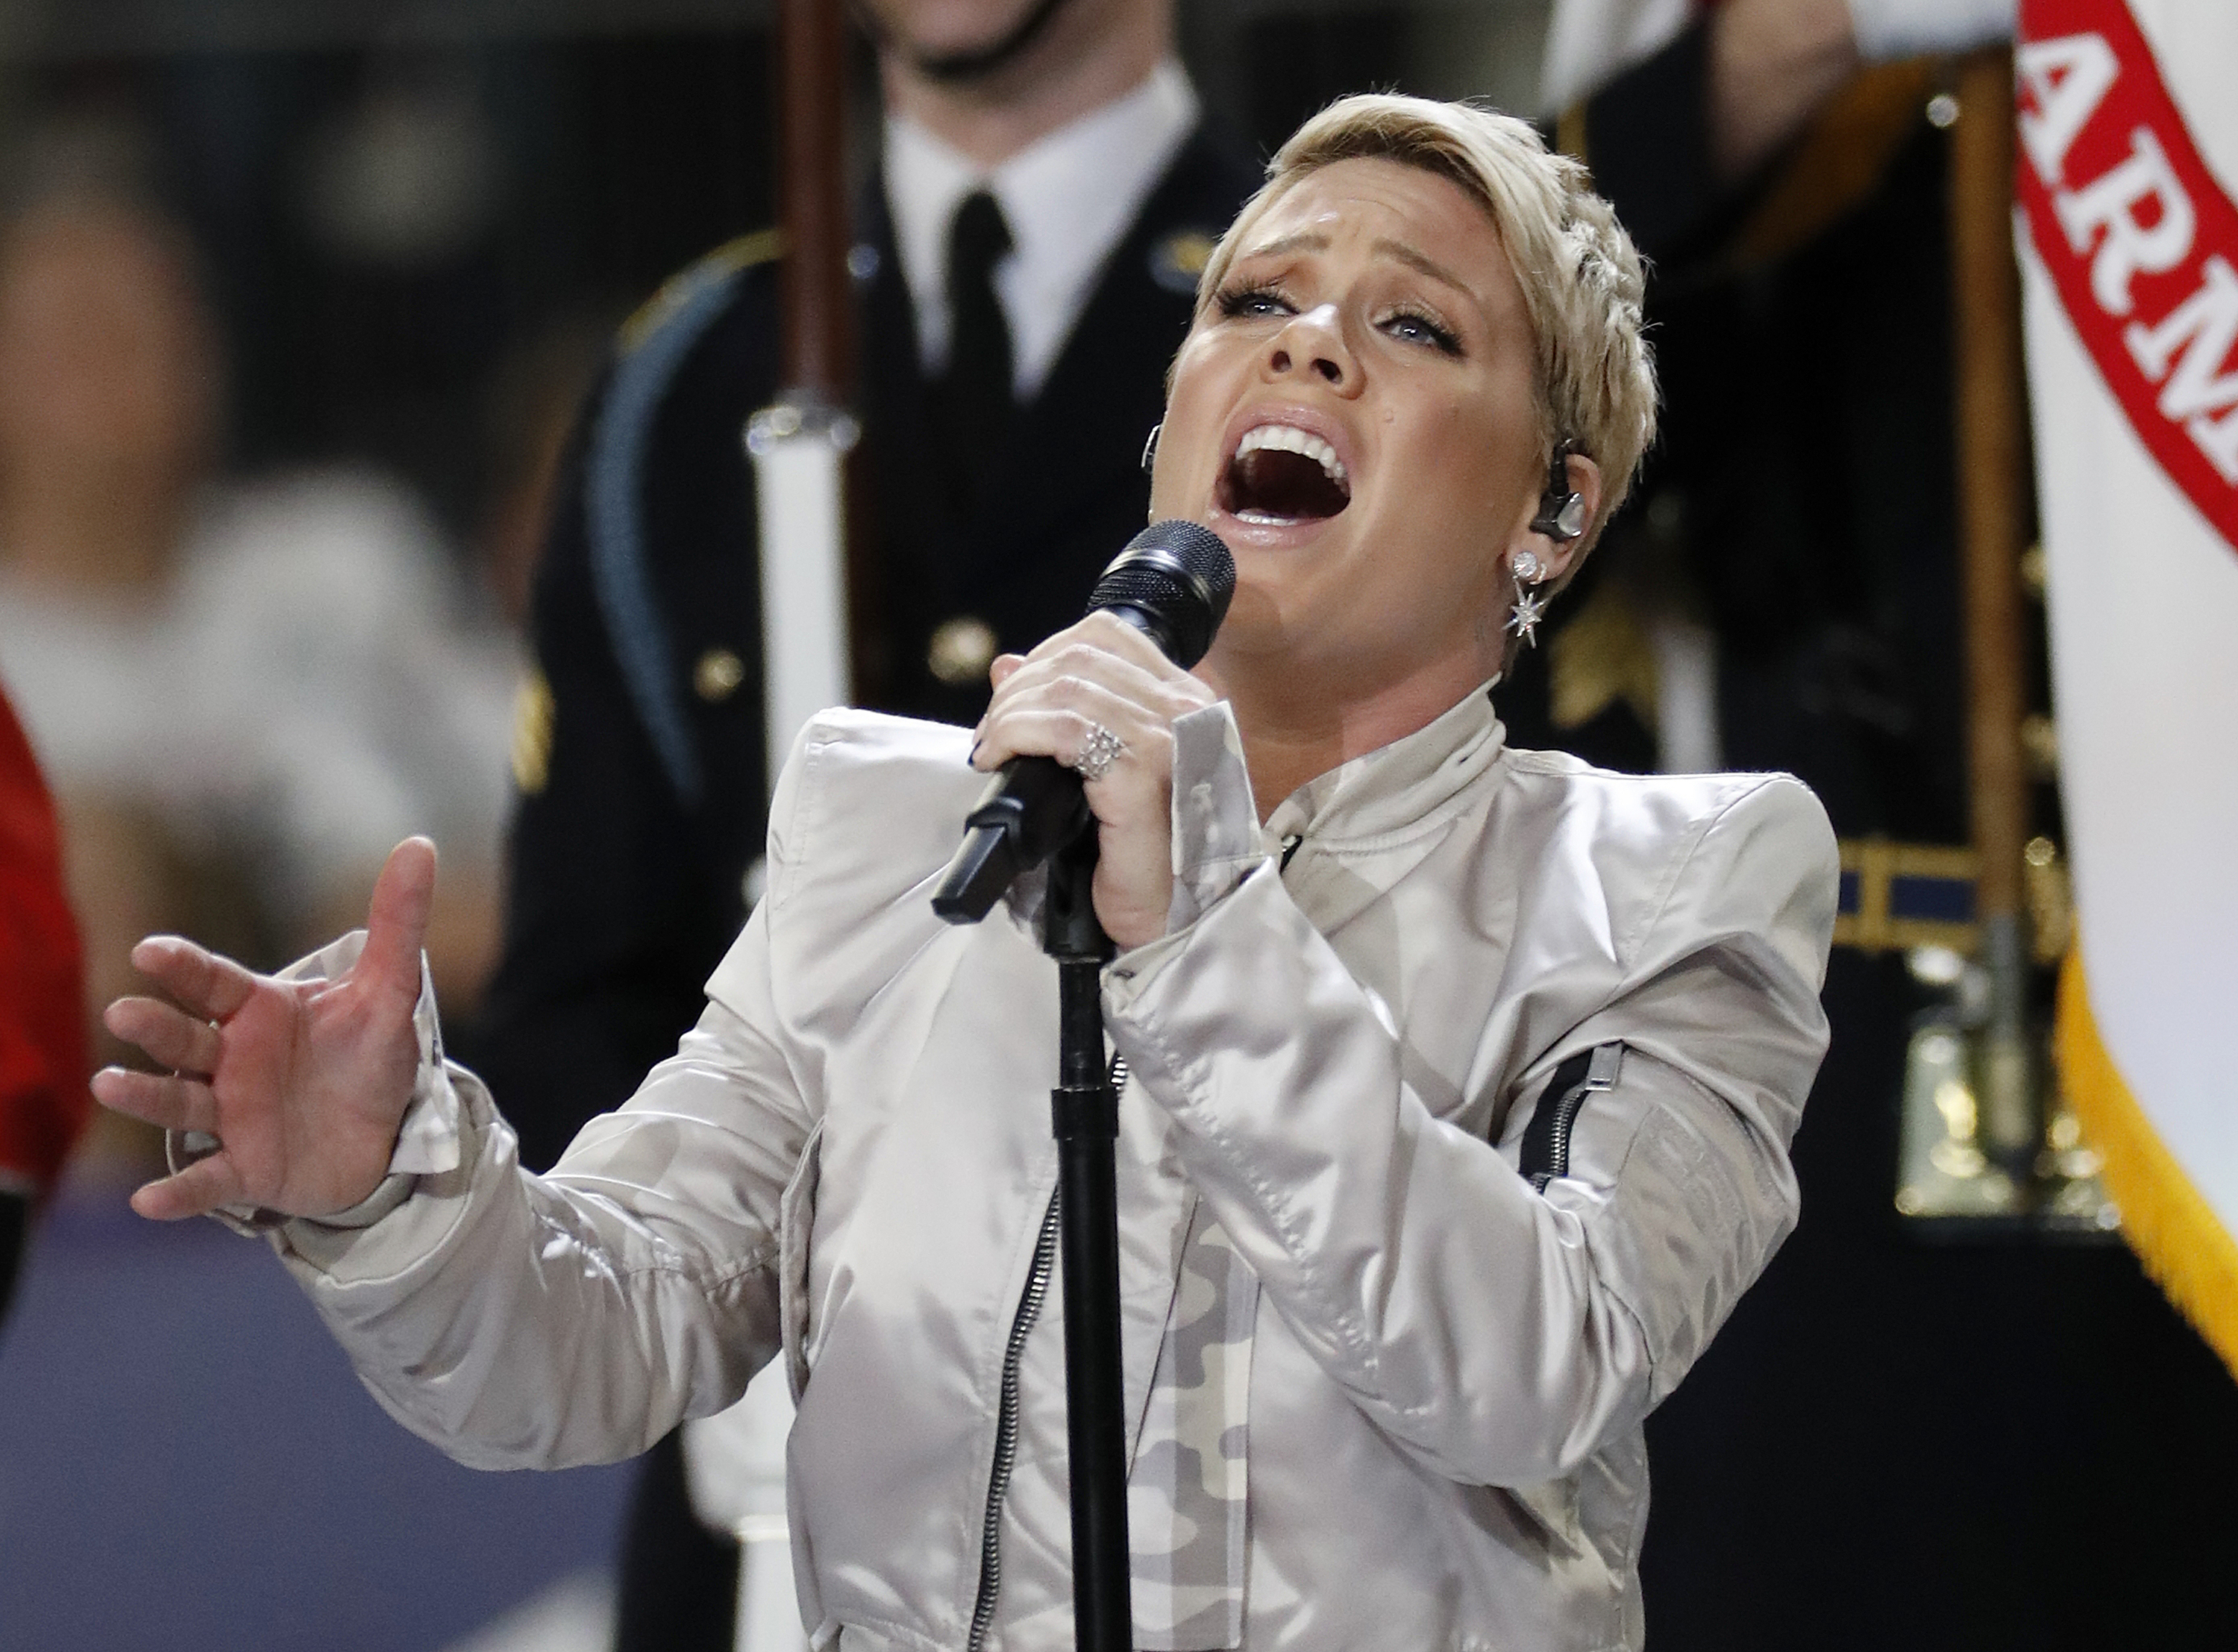 "<div class=""meta image-caption""><div class=""origin-logo origin-image ap""><span>AP</span></div><span class=""caption-text"">Pink performs the national anthem before the NFL Super Bowl 52 football game between the Philadelphia Eagles and the New England Patriots Sunday, Feb. 4, 2018, in Minneapolis. (AP Photo/Matt York)</span></div>"